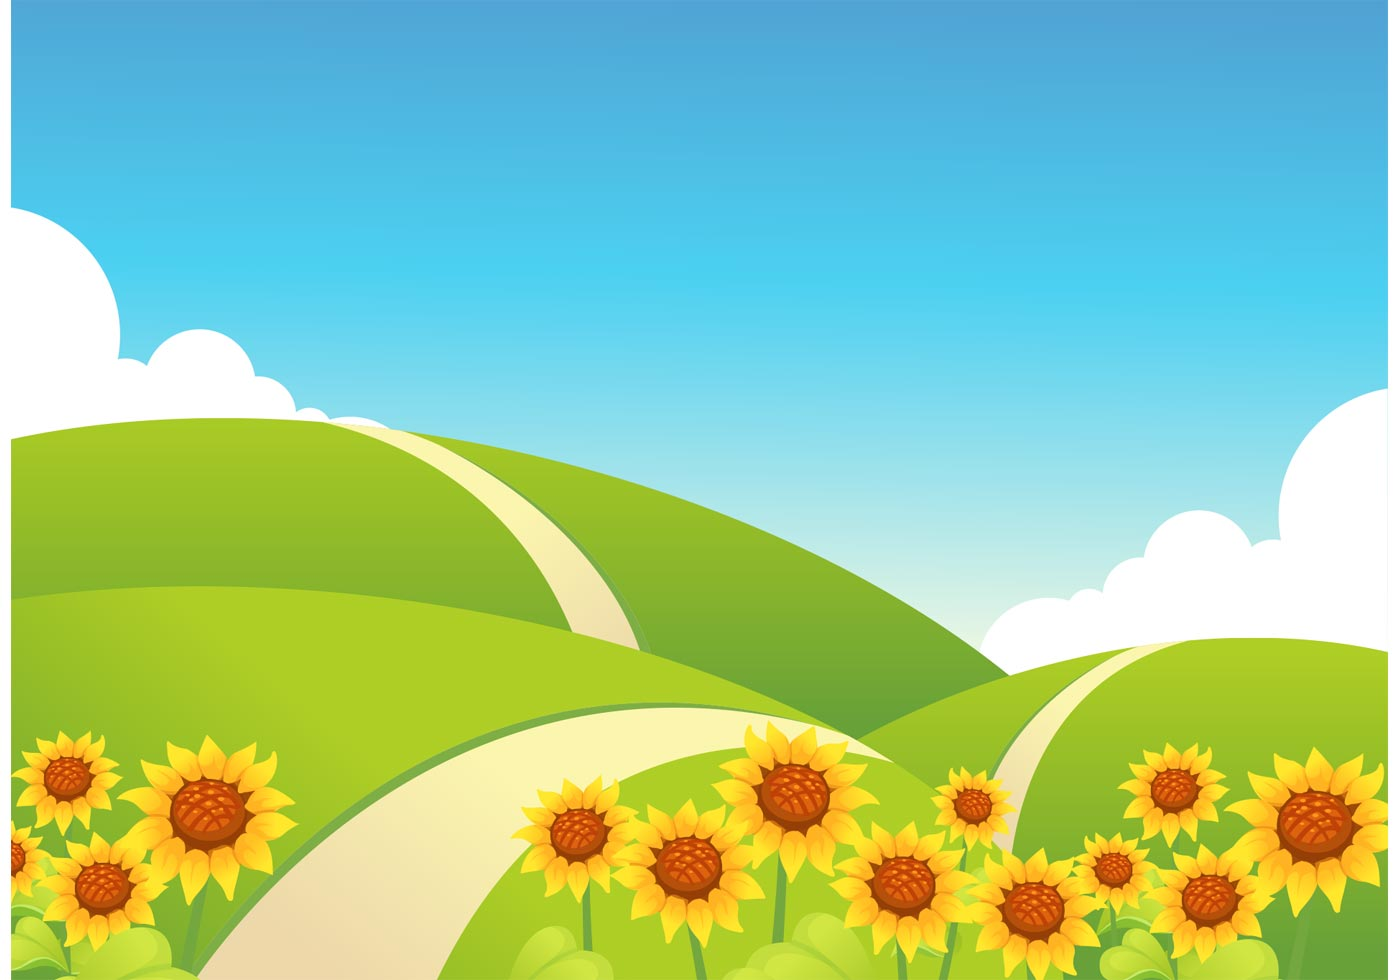 Rolling Hills With Sunflowers Vector Download Free